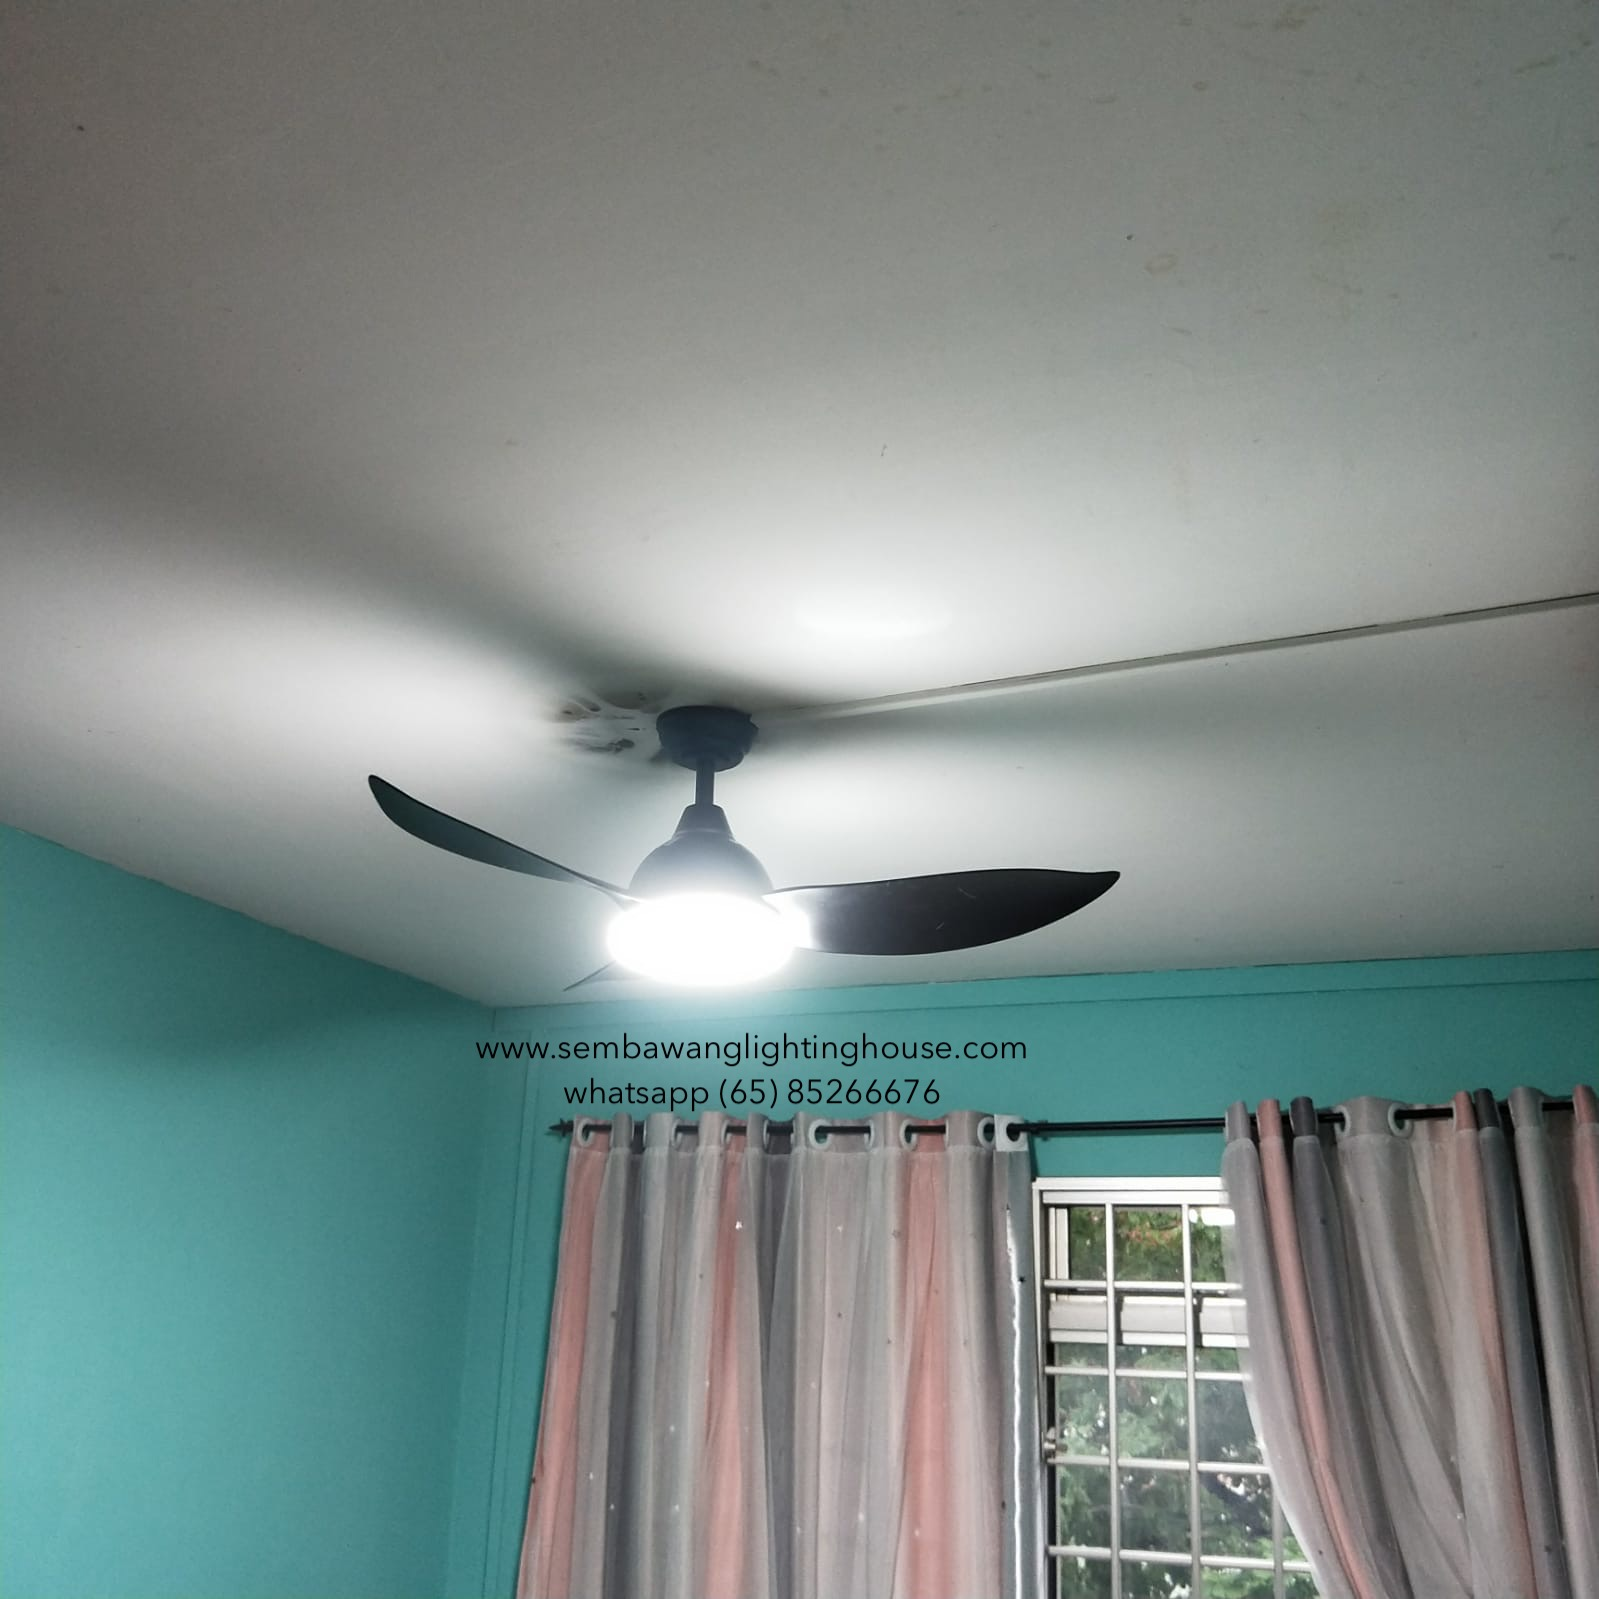 bestar-raptor-black-ceiling-fan-with-light-sembawang-lighting-house-04.jpg